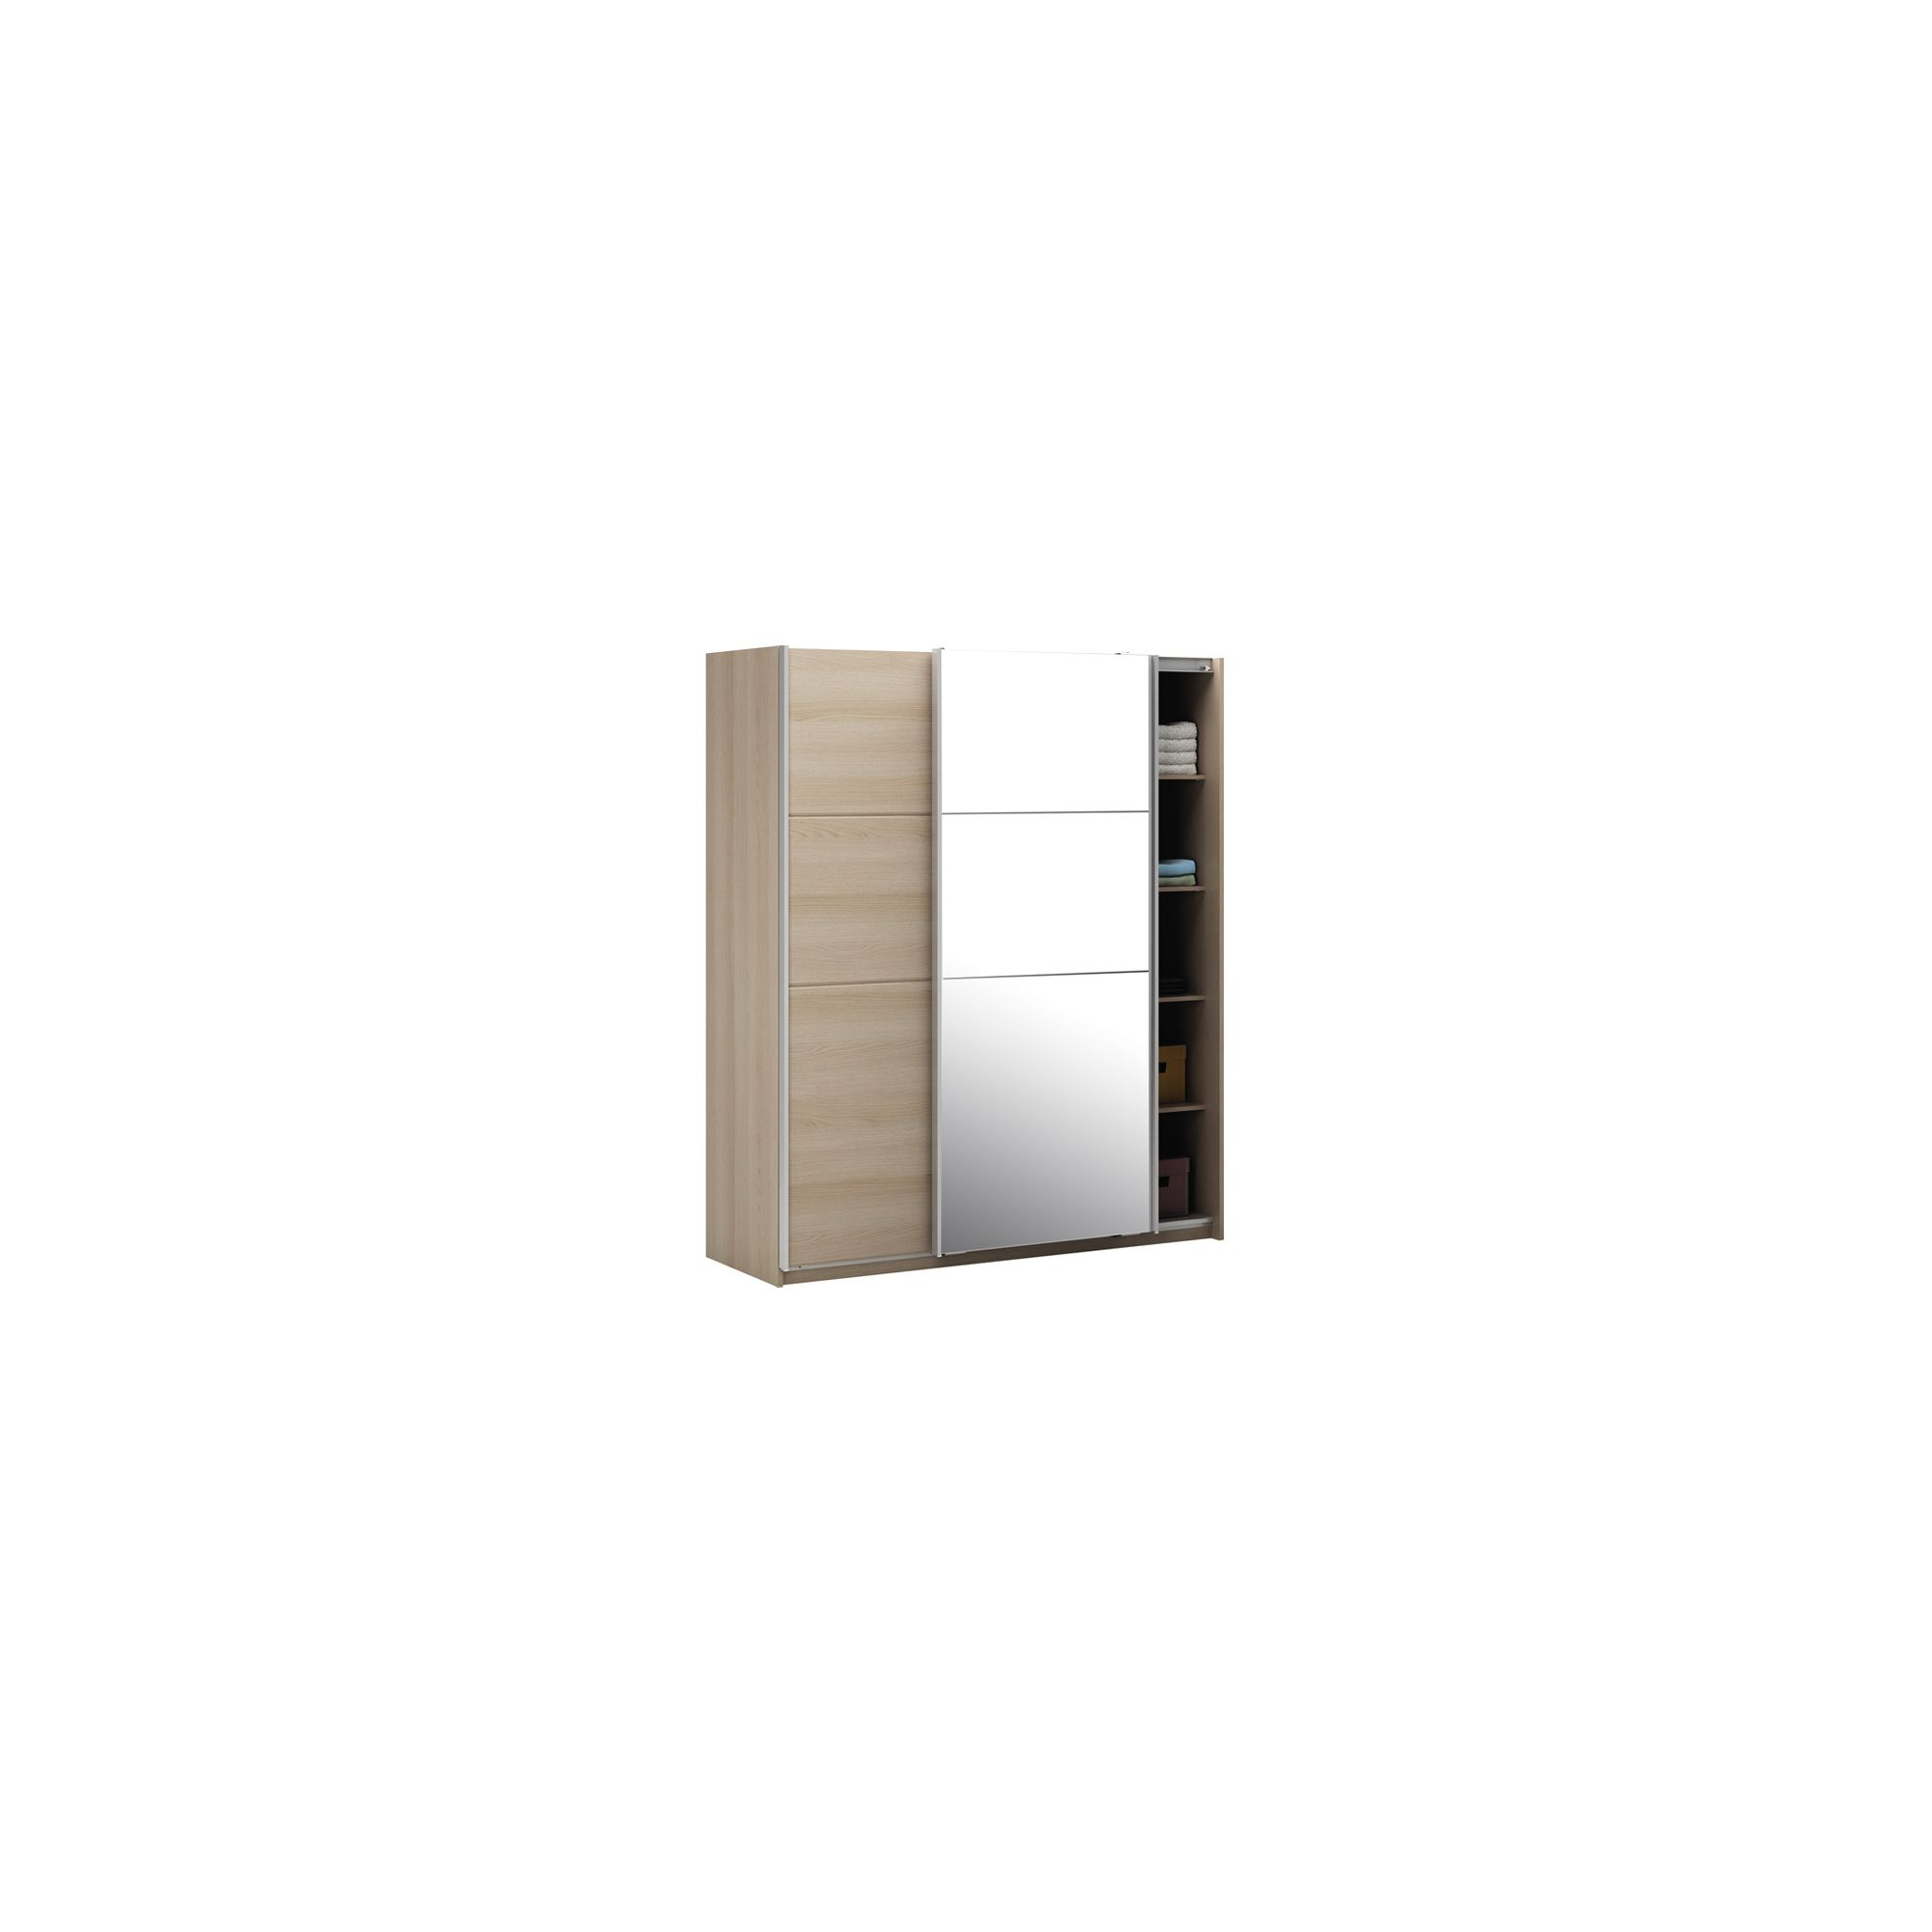 Altruna Elmont Mirrored Slider Wardrobe in Light Oak Veneer at Tesco Direct